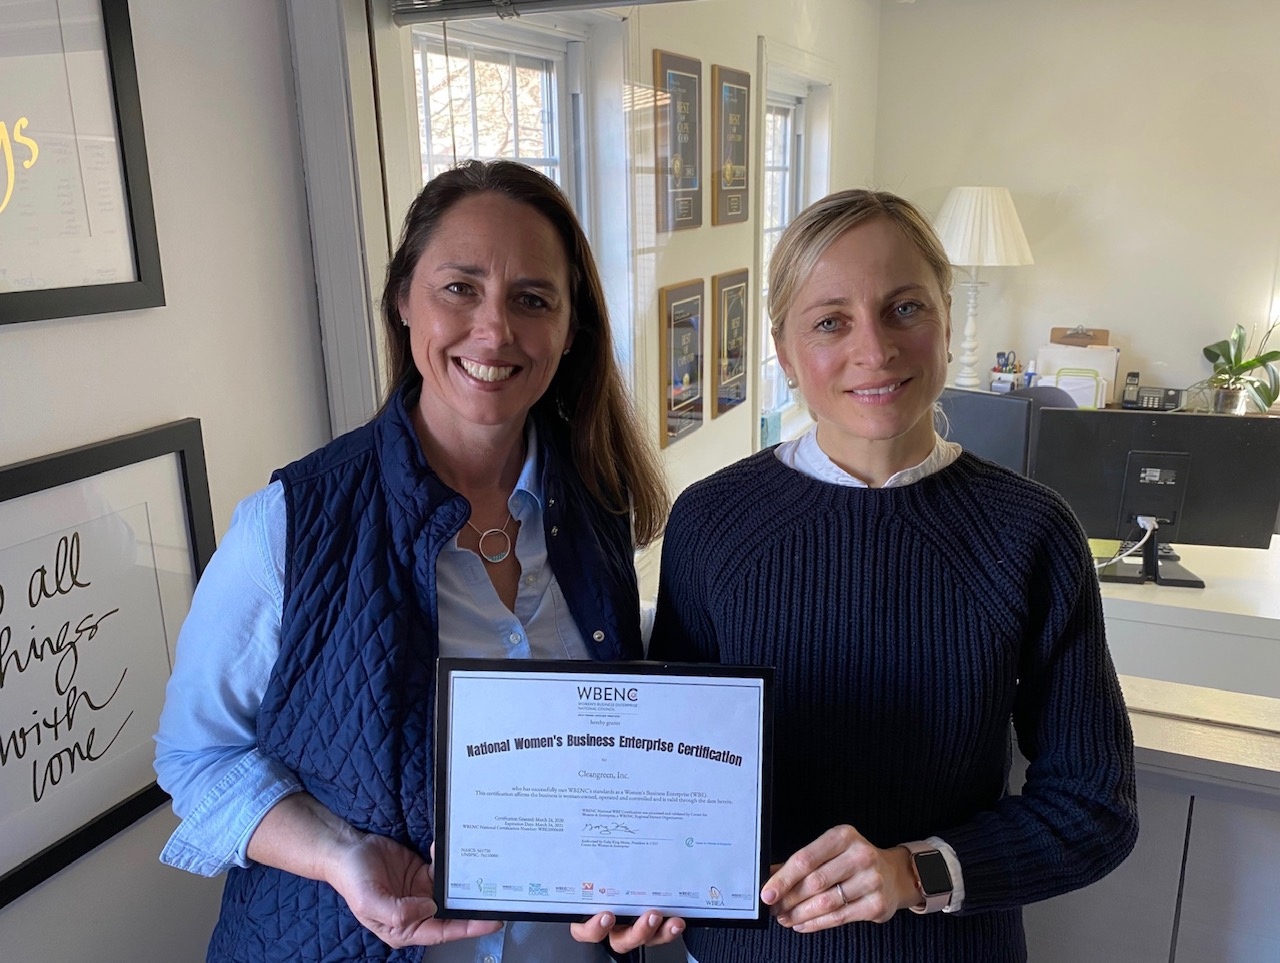 Cleangreen's Annette Contonio and Jitka Borowick hold the company's Women's Busi